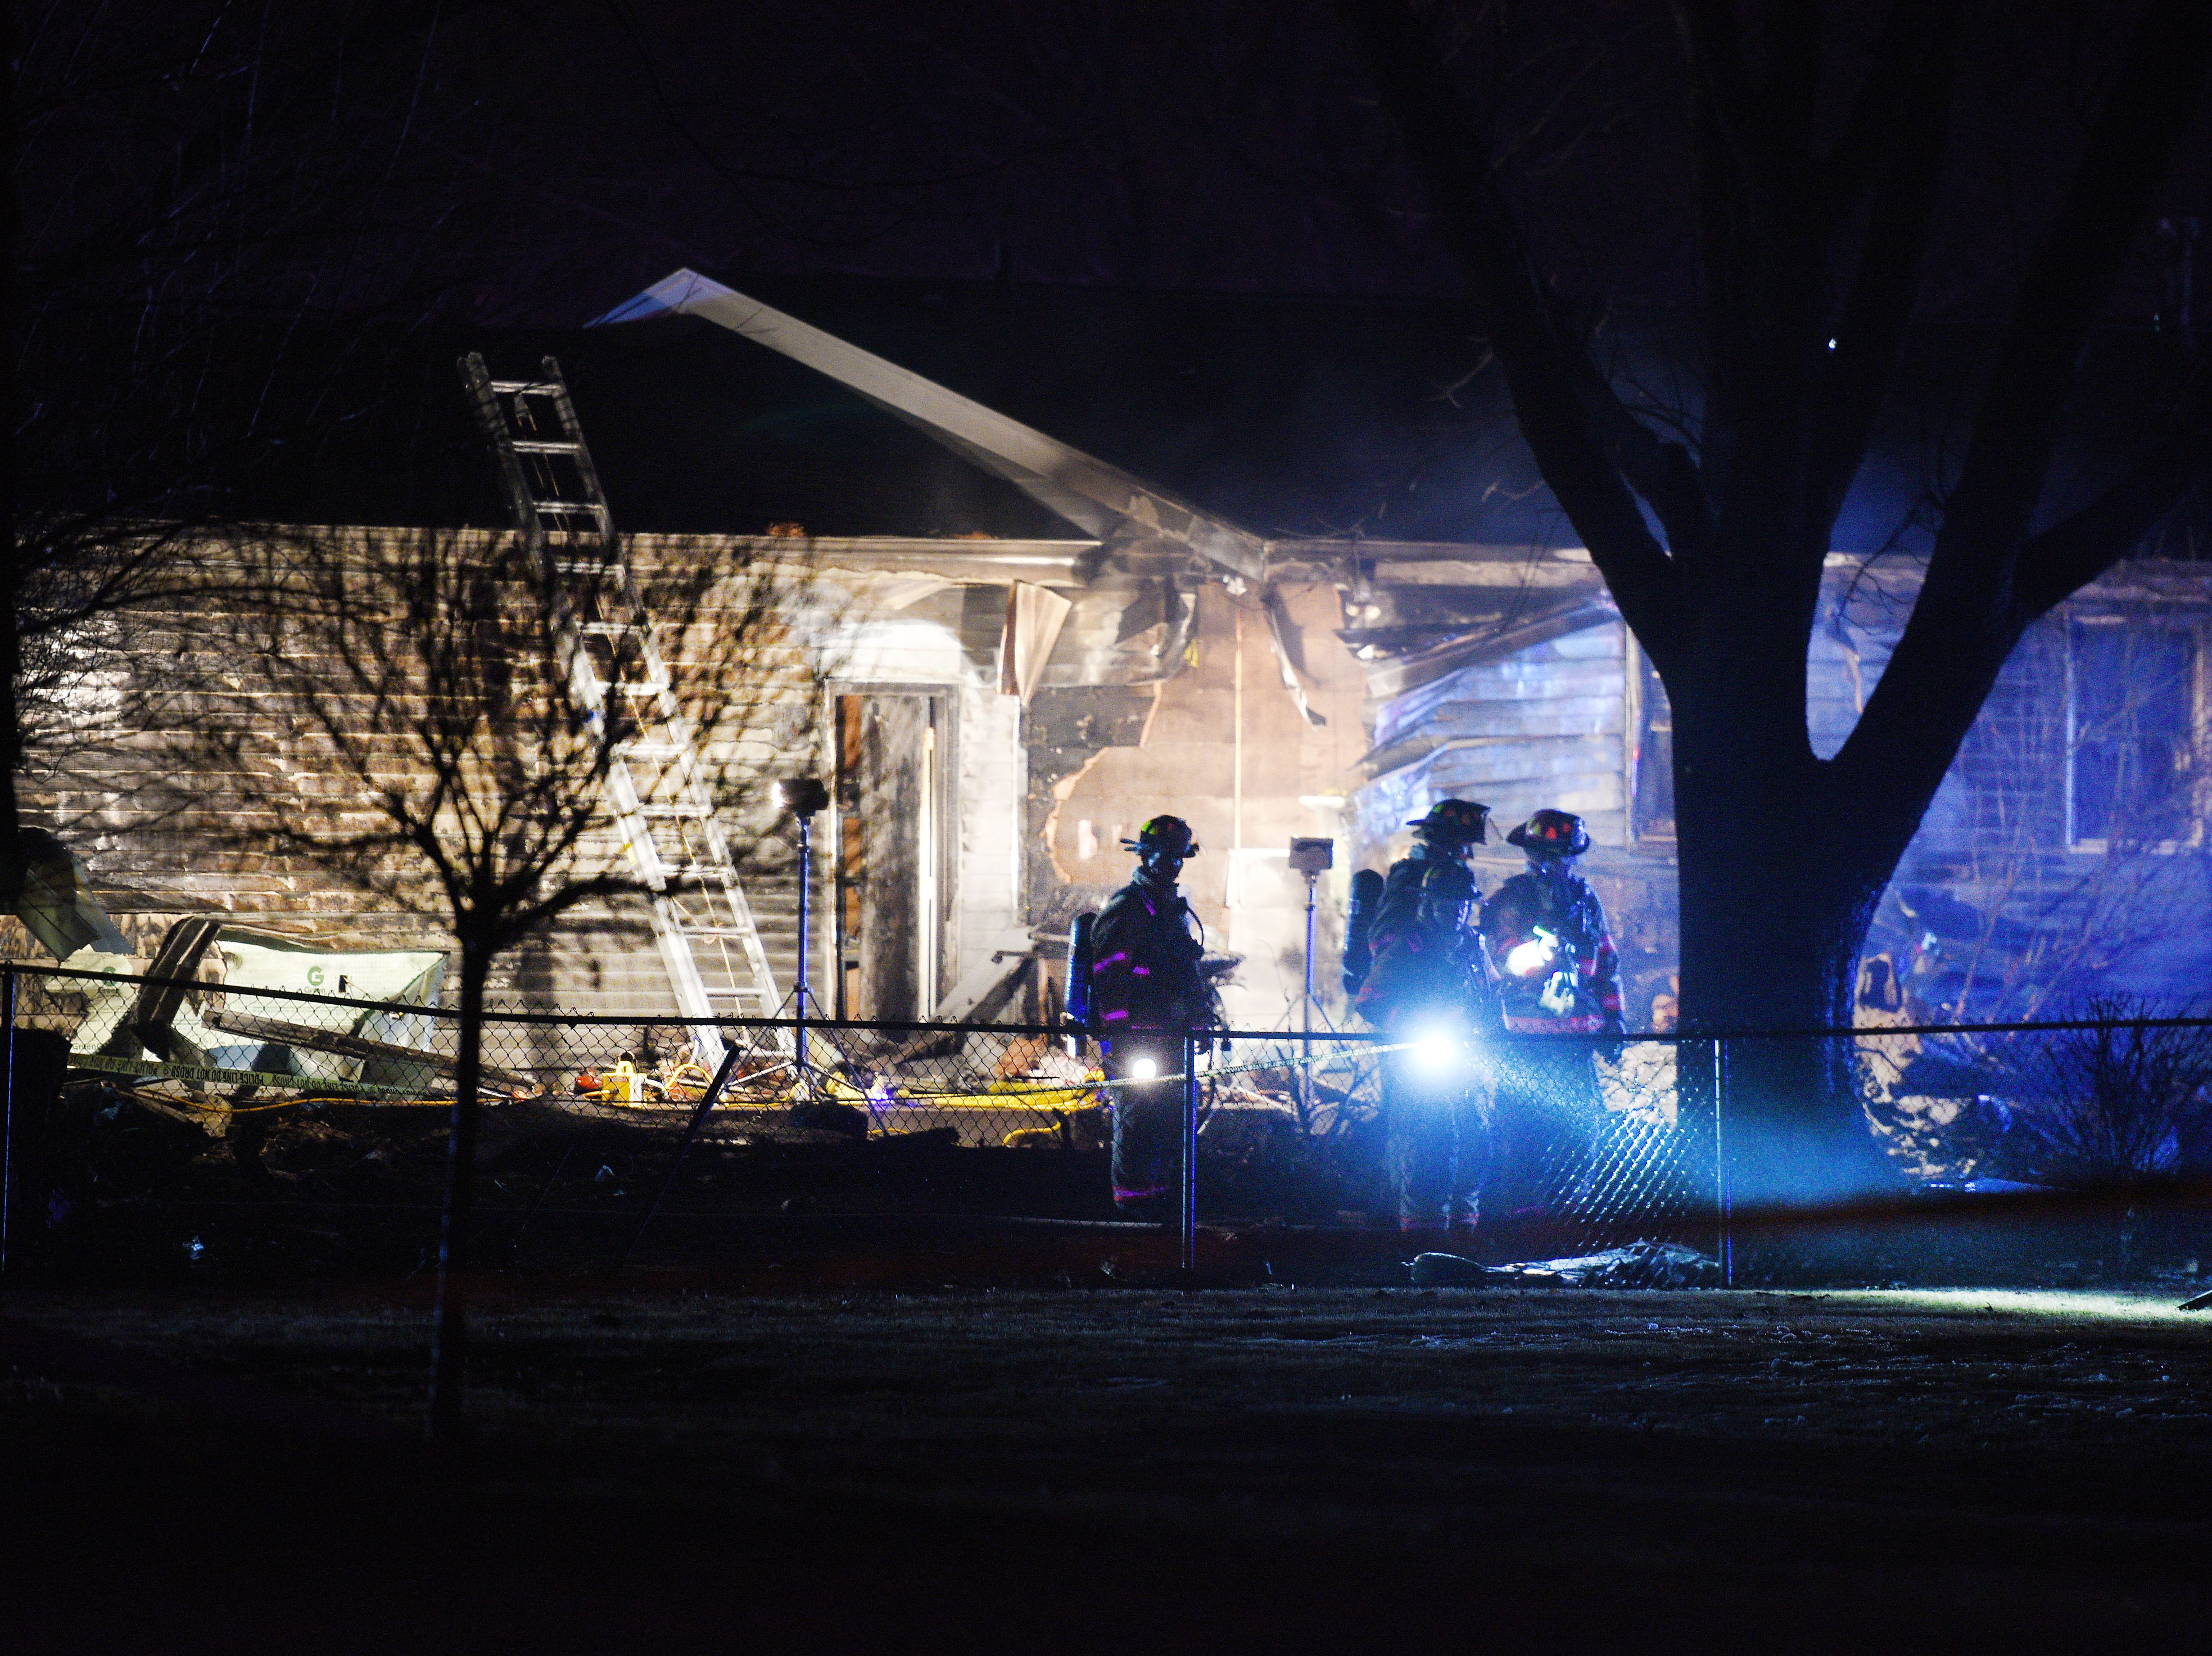 Firefighters use flash lights to search the area for debris after a plane crashed into a home in the 4200 block of south Birchwood Avenue Tuesday, Dec. 25, in Sioux Falls.